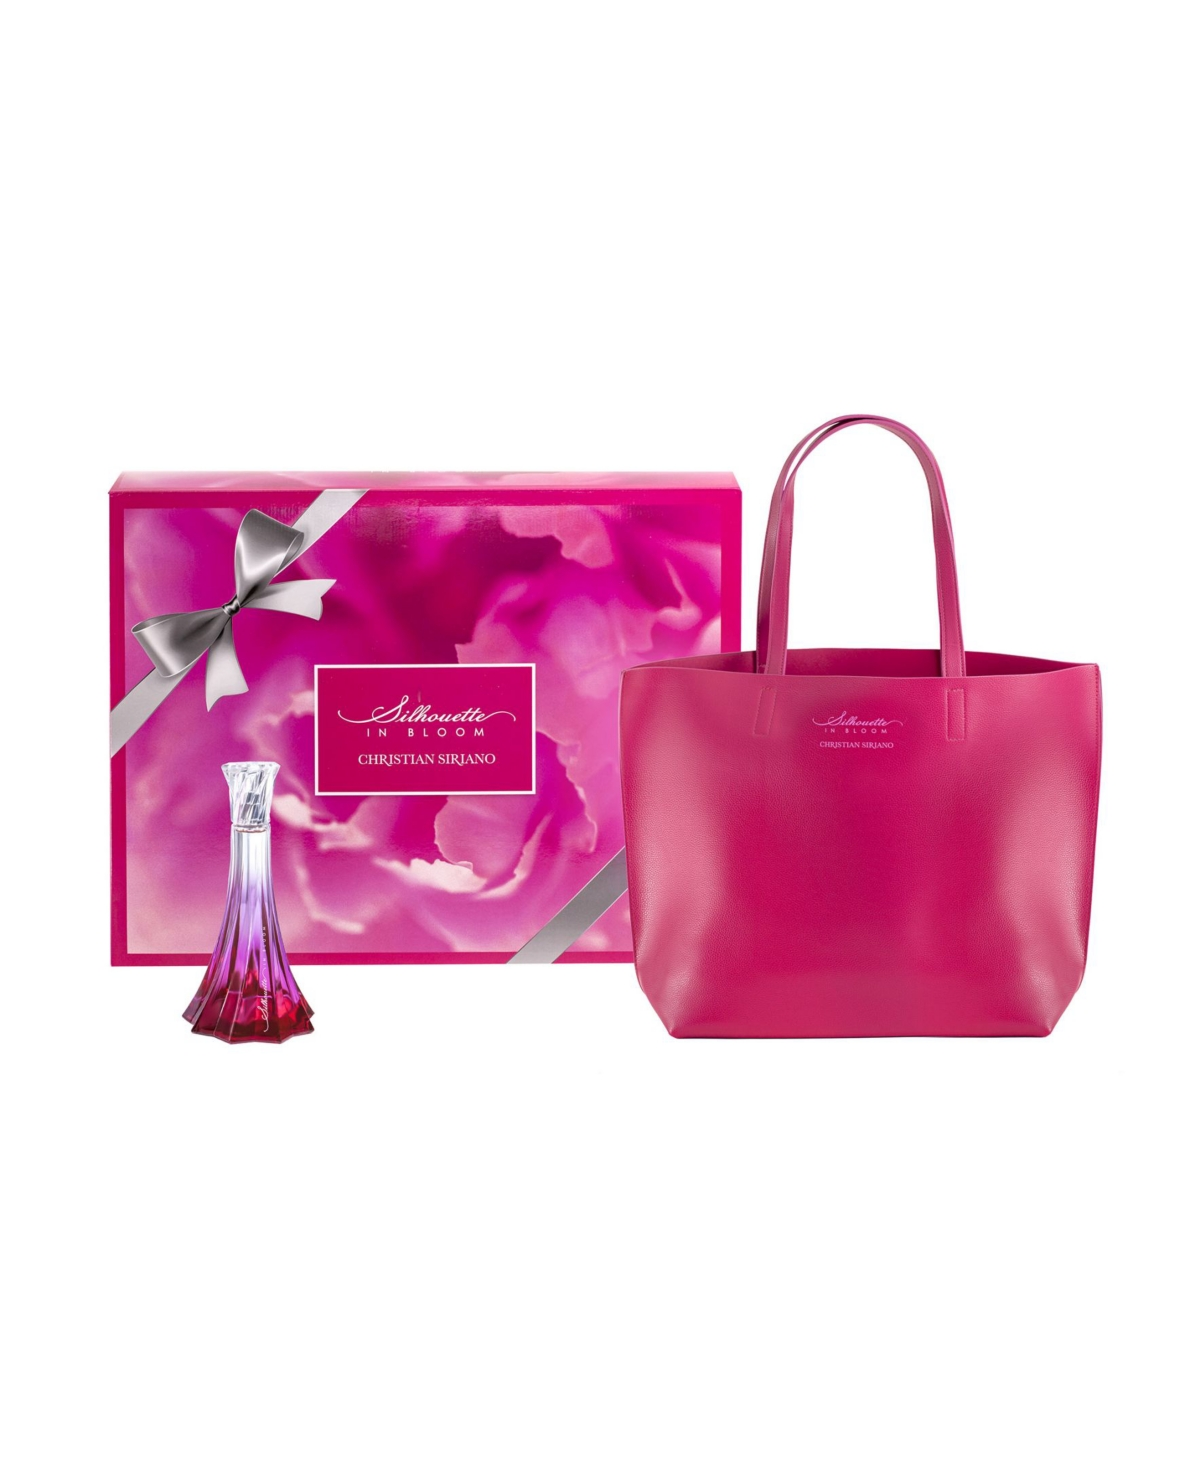 Christian Siriano Silhouette in Bloom Perfume Gift Set for Women with Tote Bag, 2 Pieces